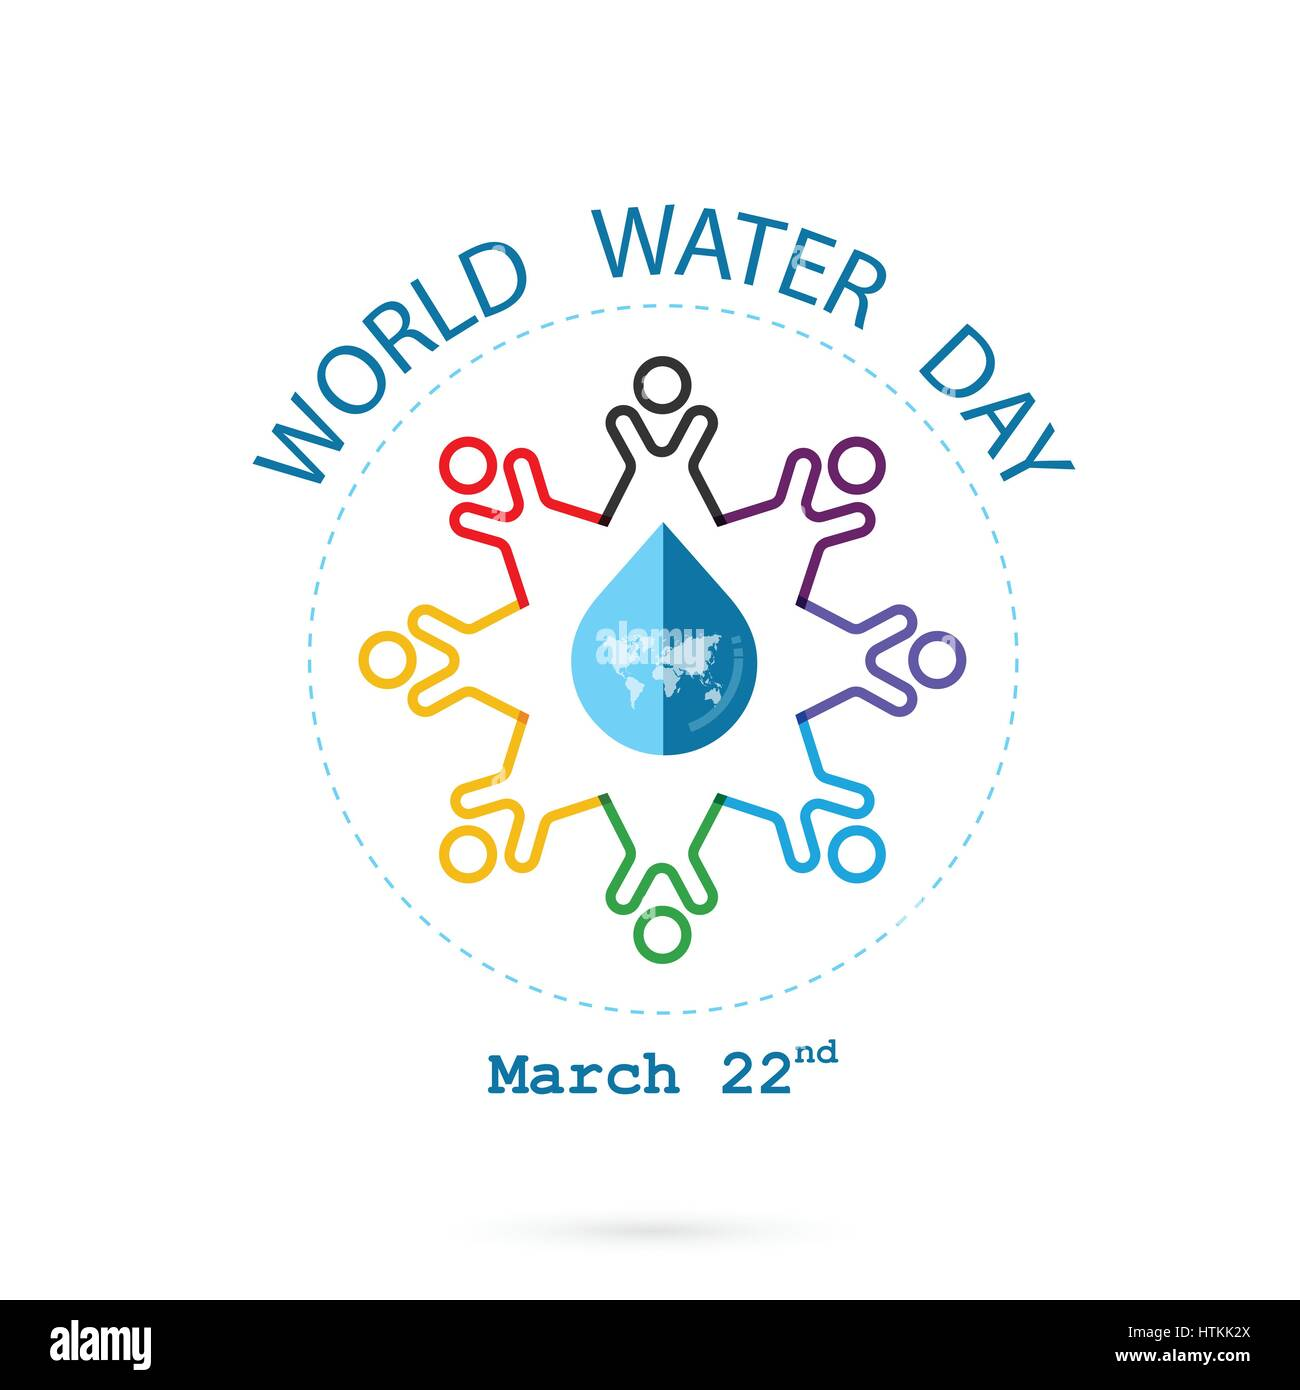 Water drop and world map with people icon vector logo design stock water drop and world map with people icon vector logo design template water day idea campaign for greeting card and posterctor illustration gumiabroncs Images